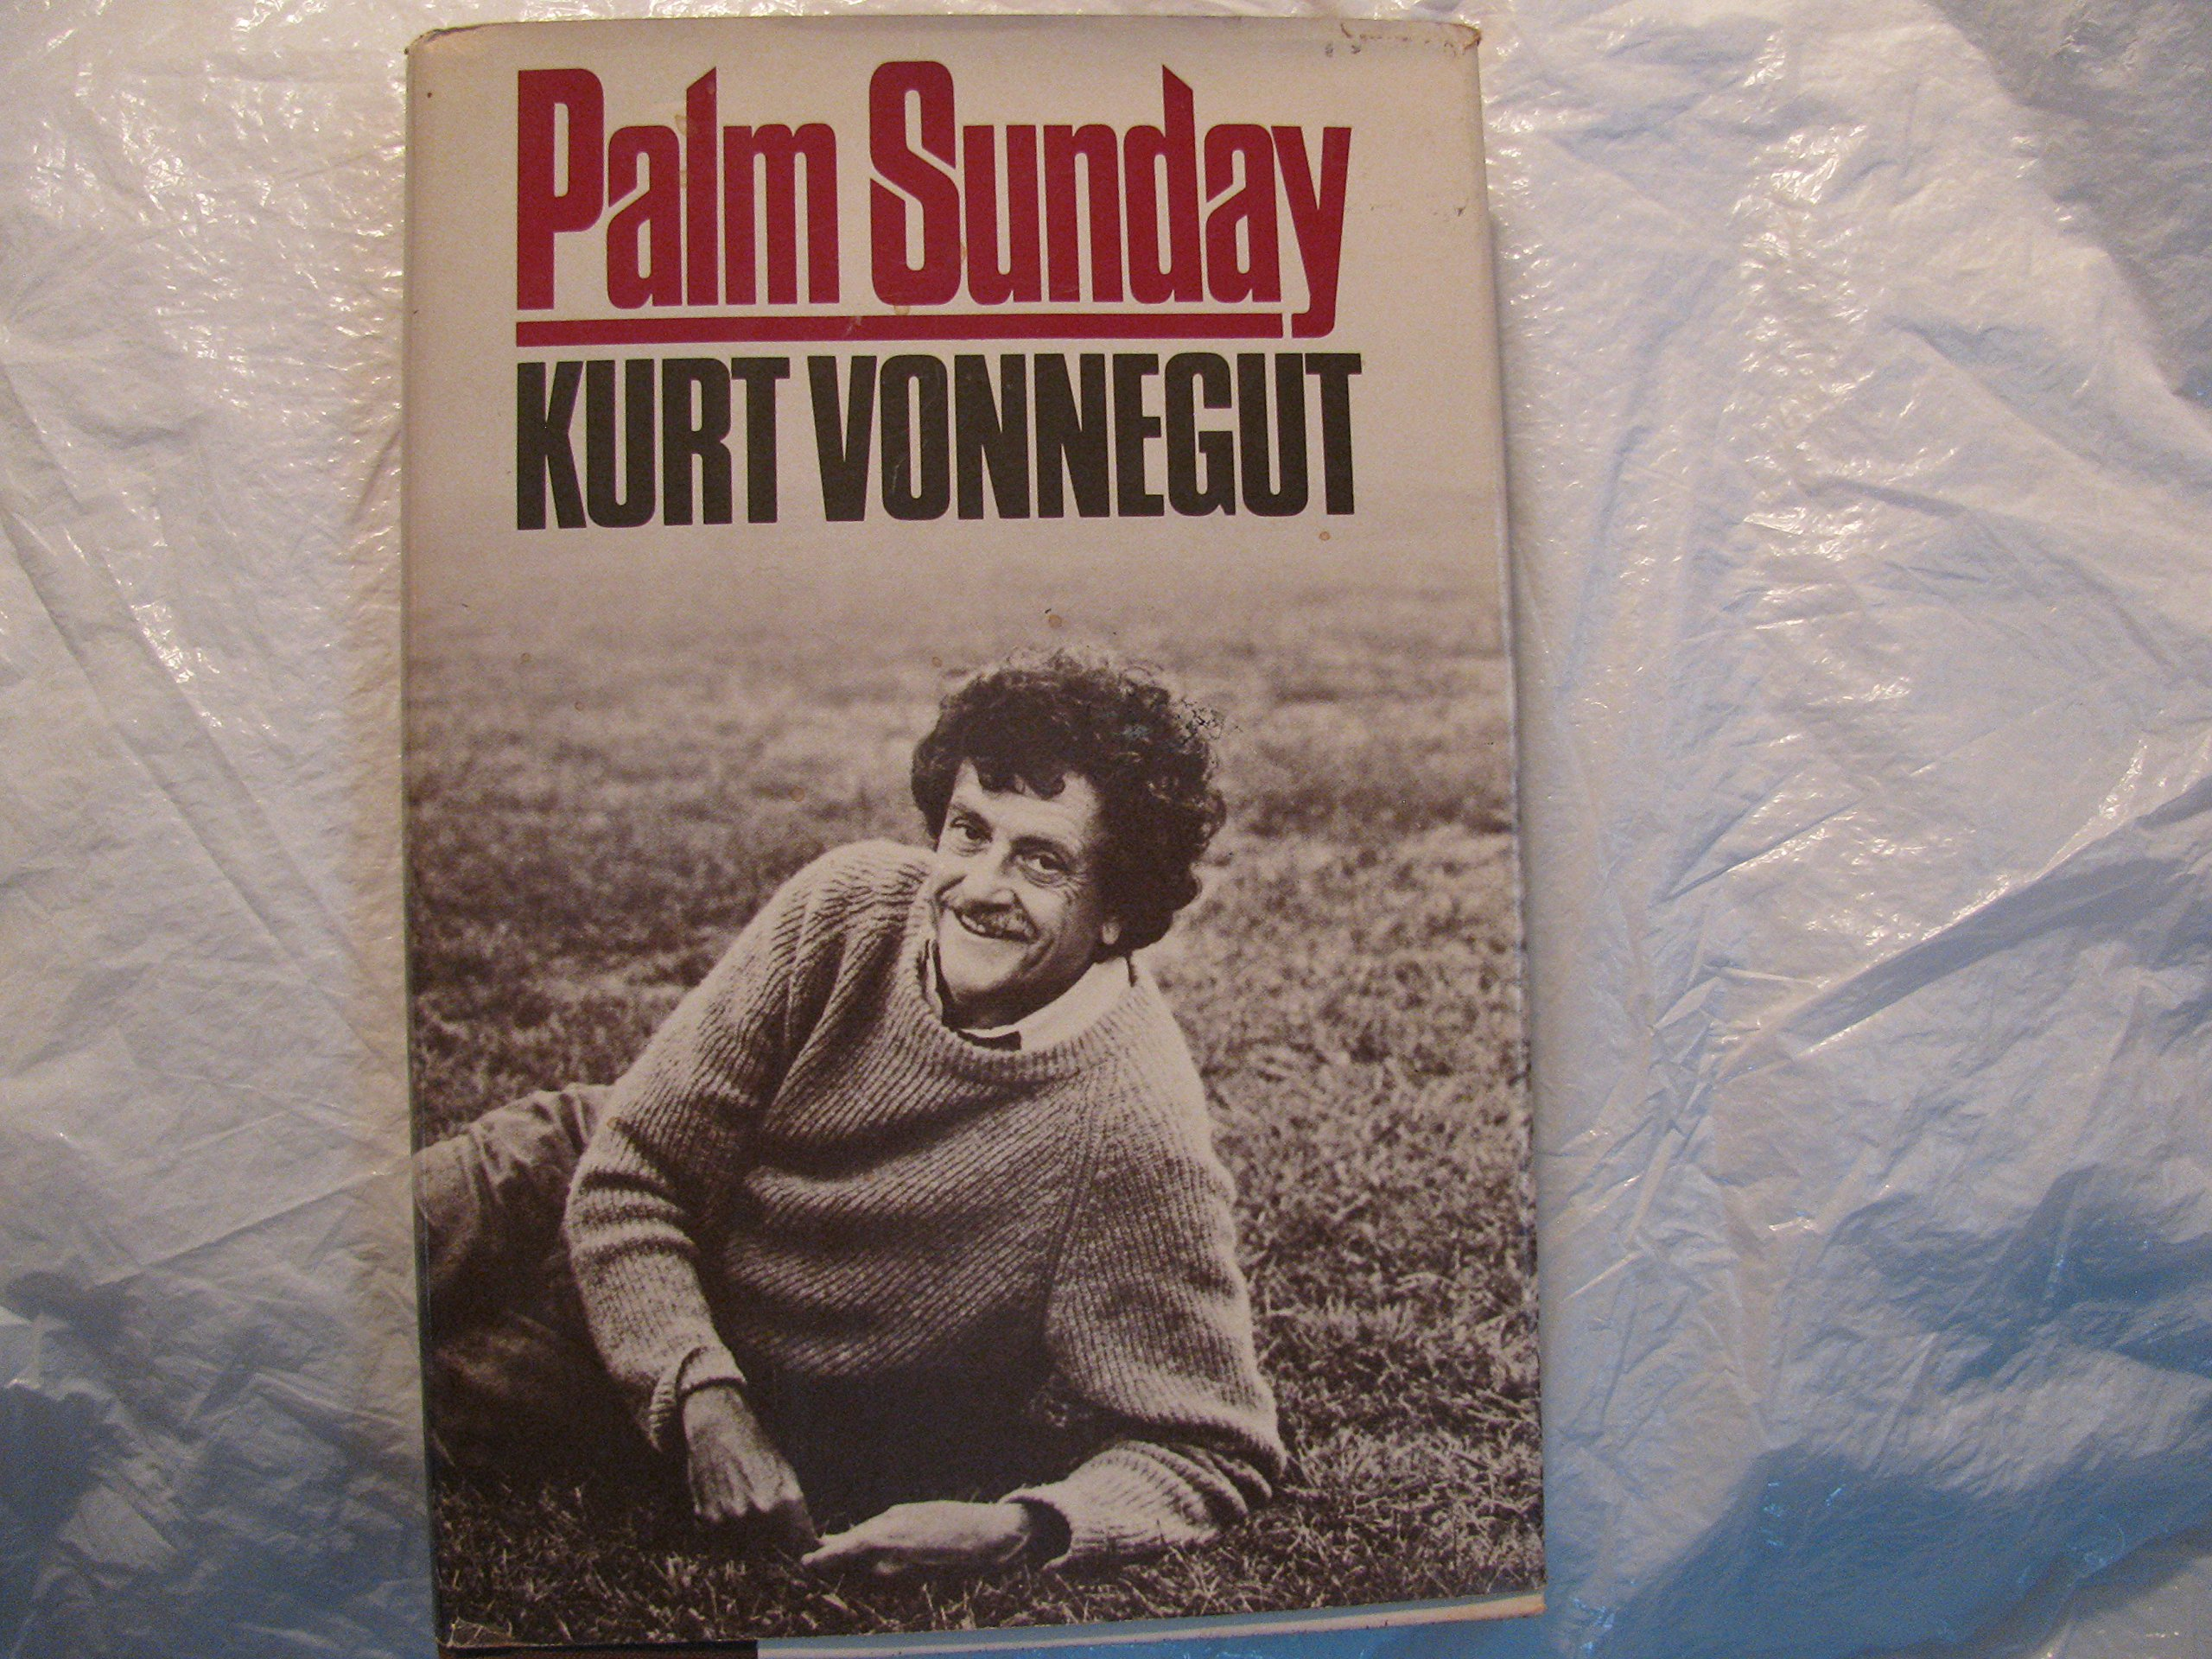 palm sunday an autobiographical st edition kurt vonnegut palm sunday an autobiographical 1st edition kurt vonnegut 9781112779046 com books